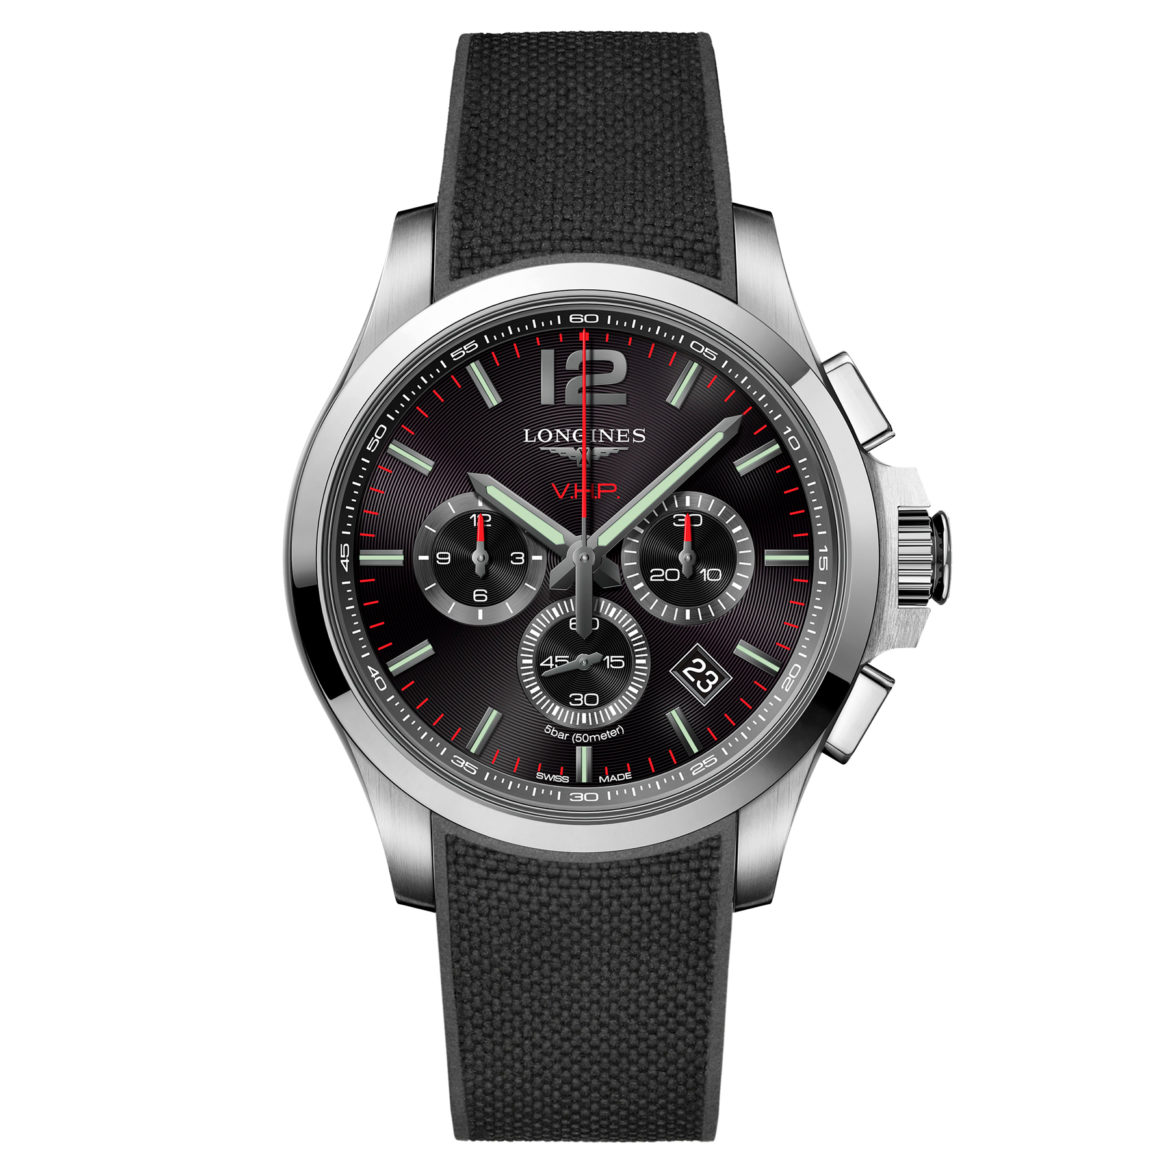 LONGINES</br/>Conquest VHP</br/>L37274569